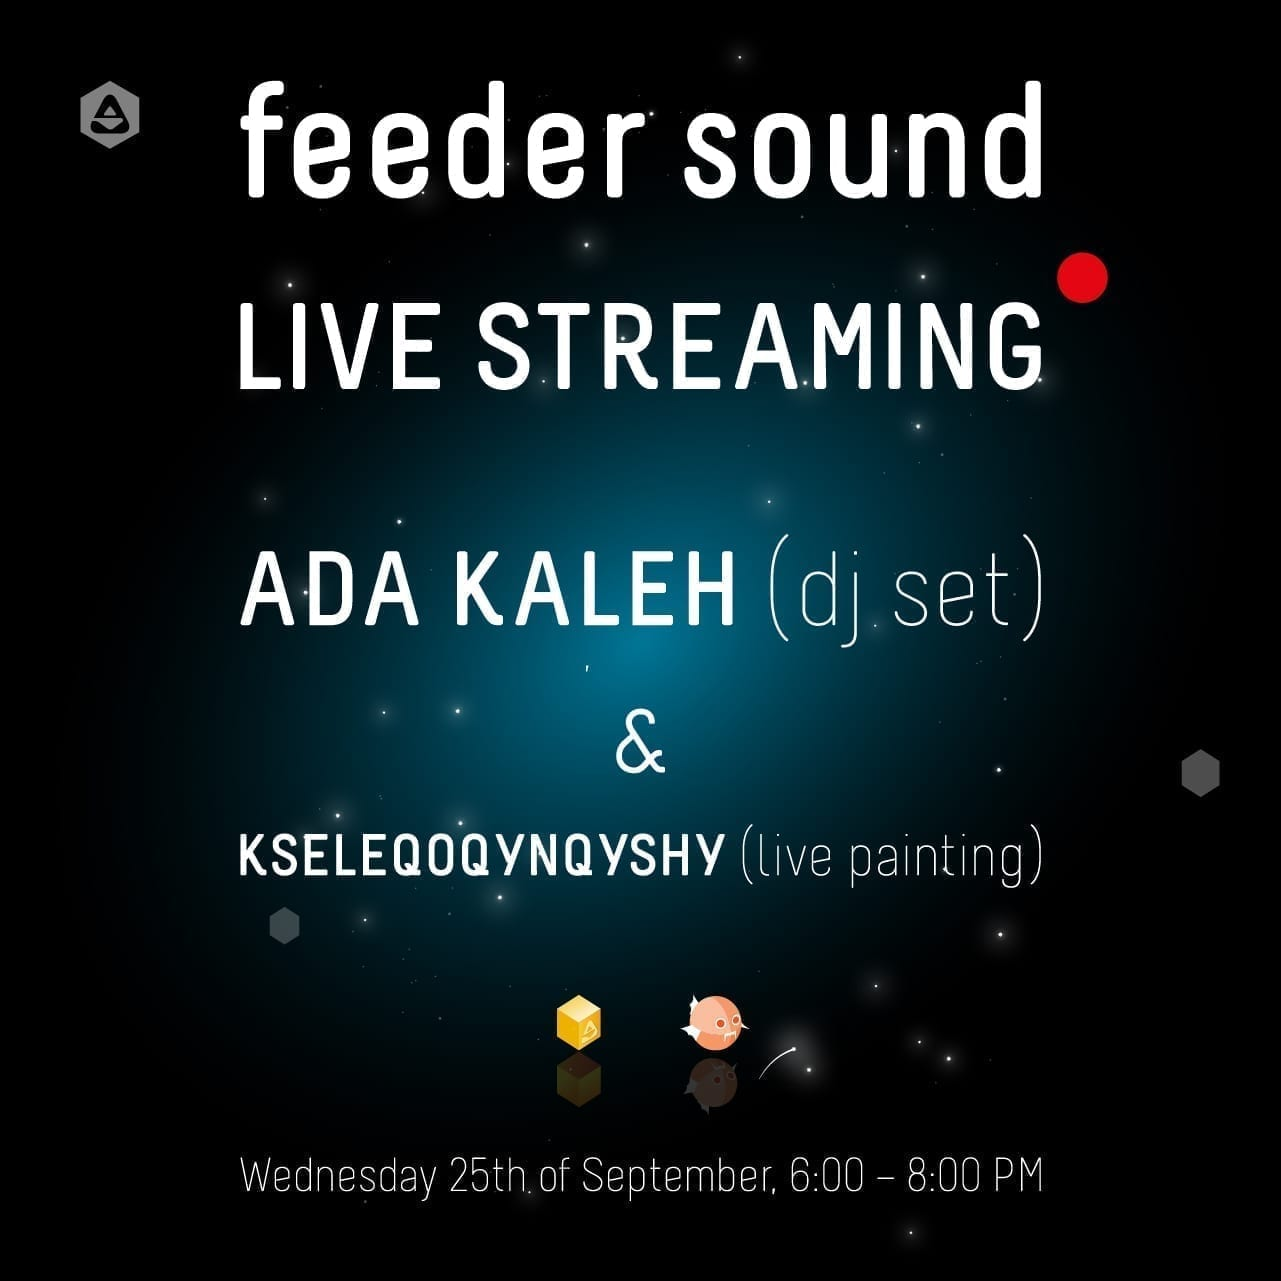 feeder sound LIVE streaming with ADA KALEH (dj set) & KSELEQOQYNQYSHY (live painting)